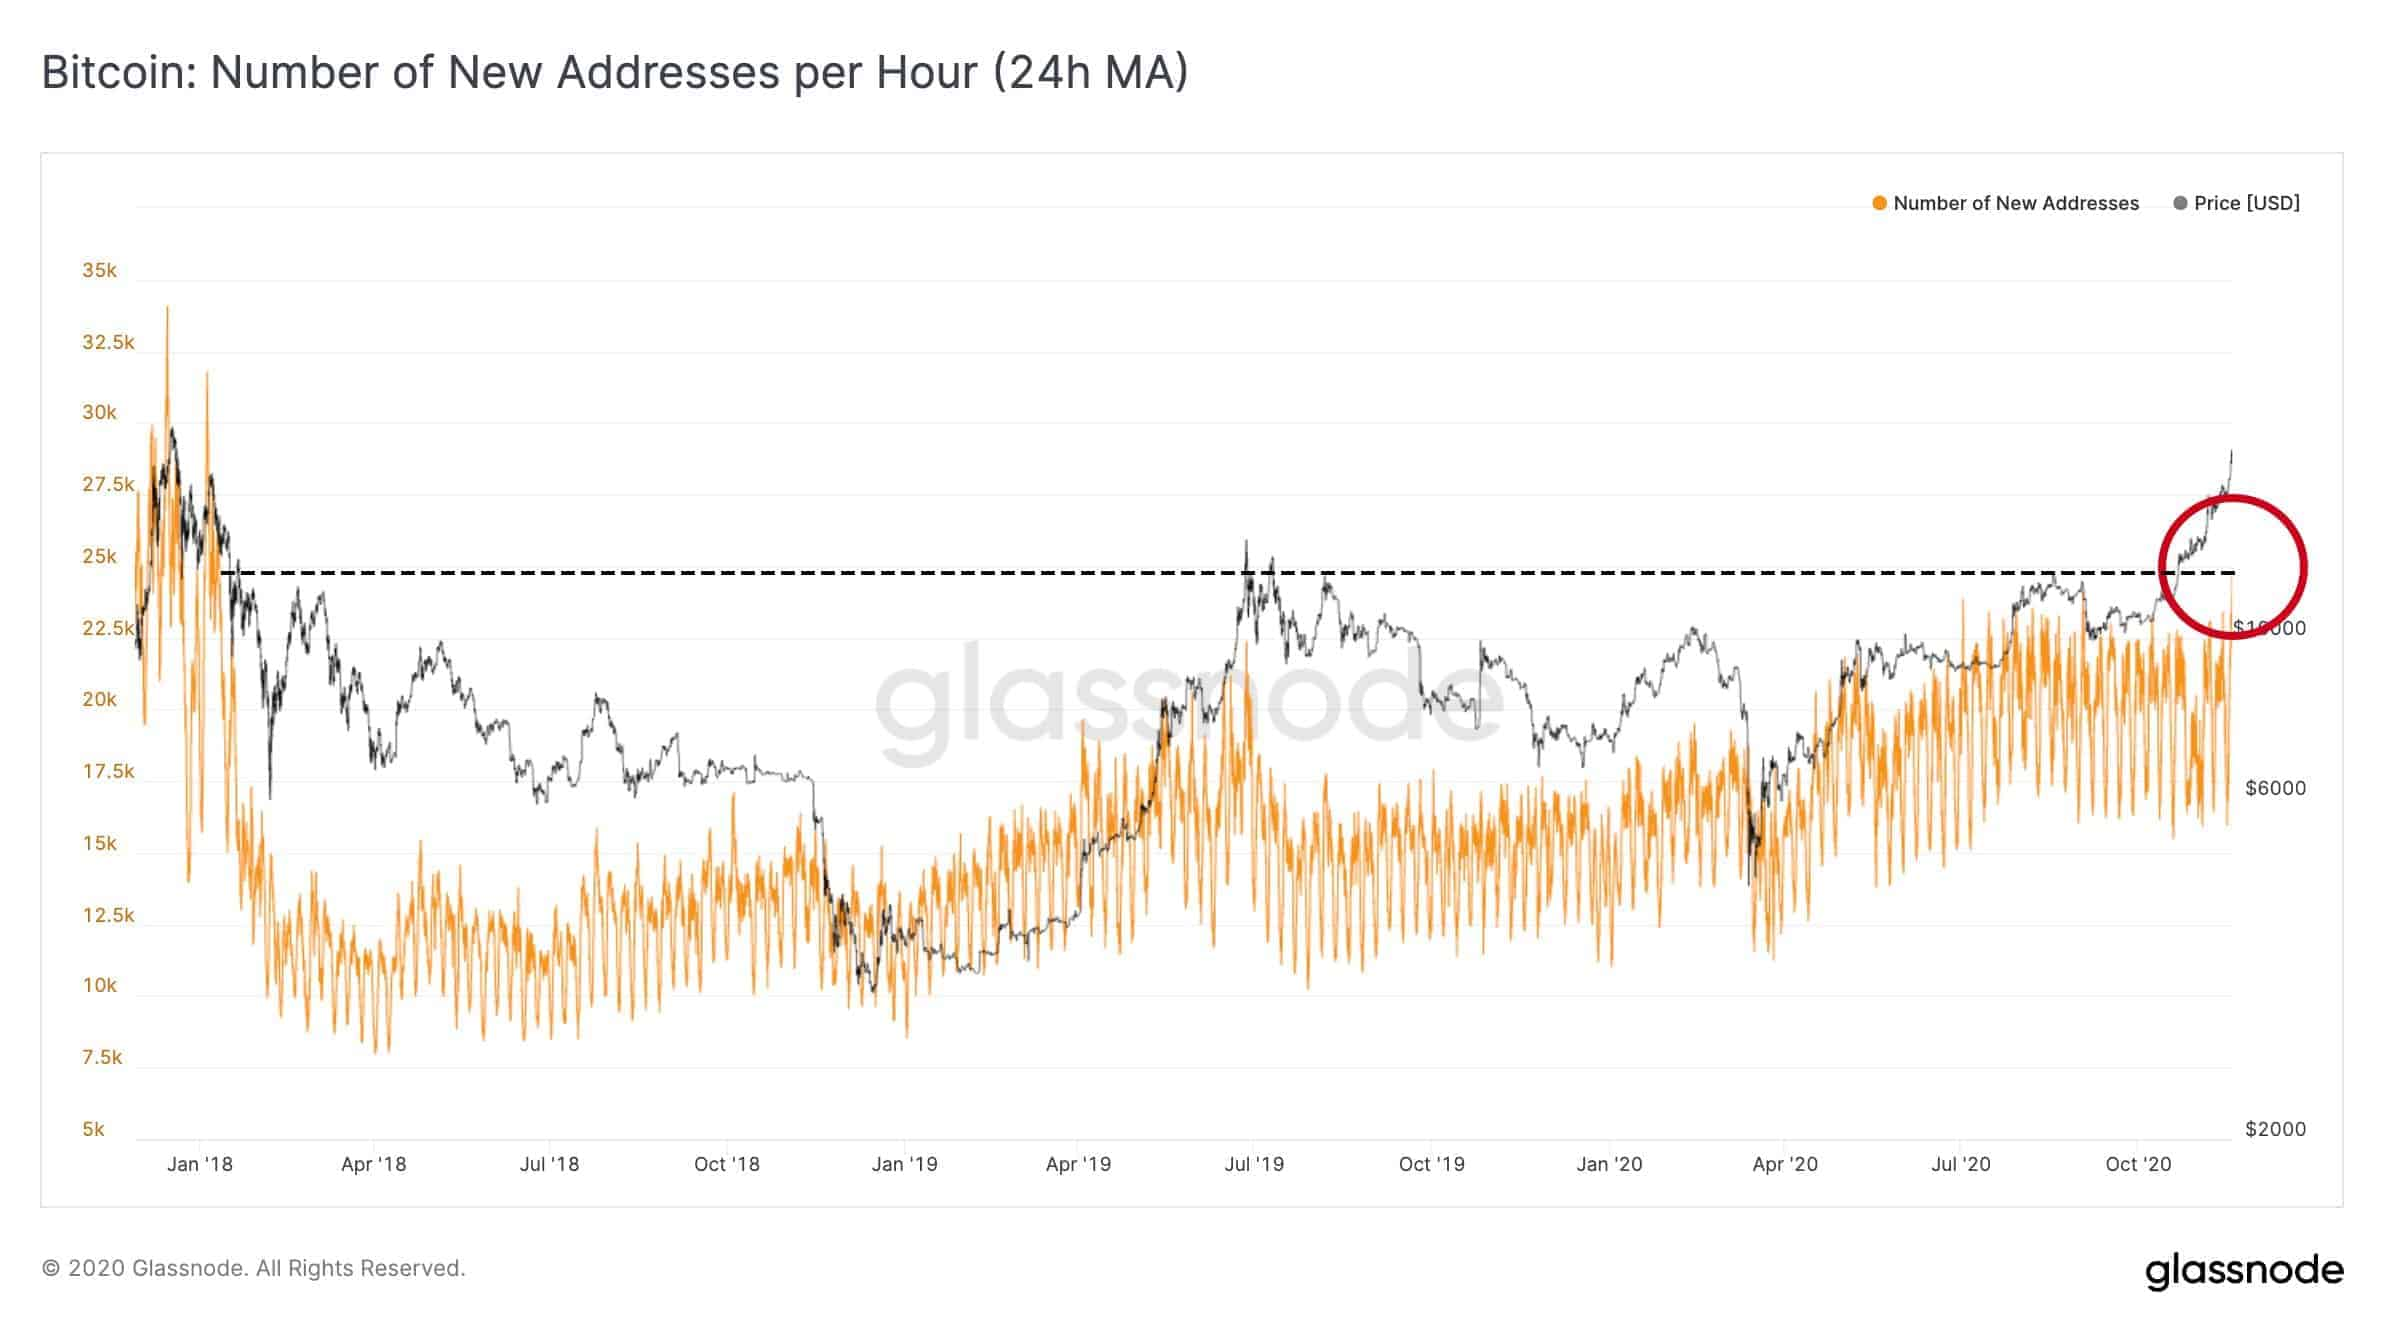 New Addresses On The BTC Network. Source: Glassnode